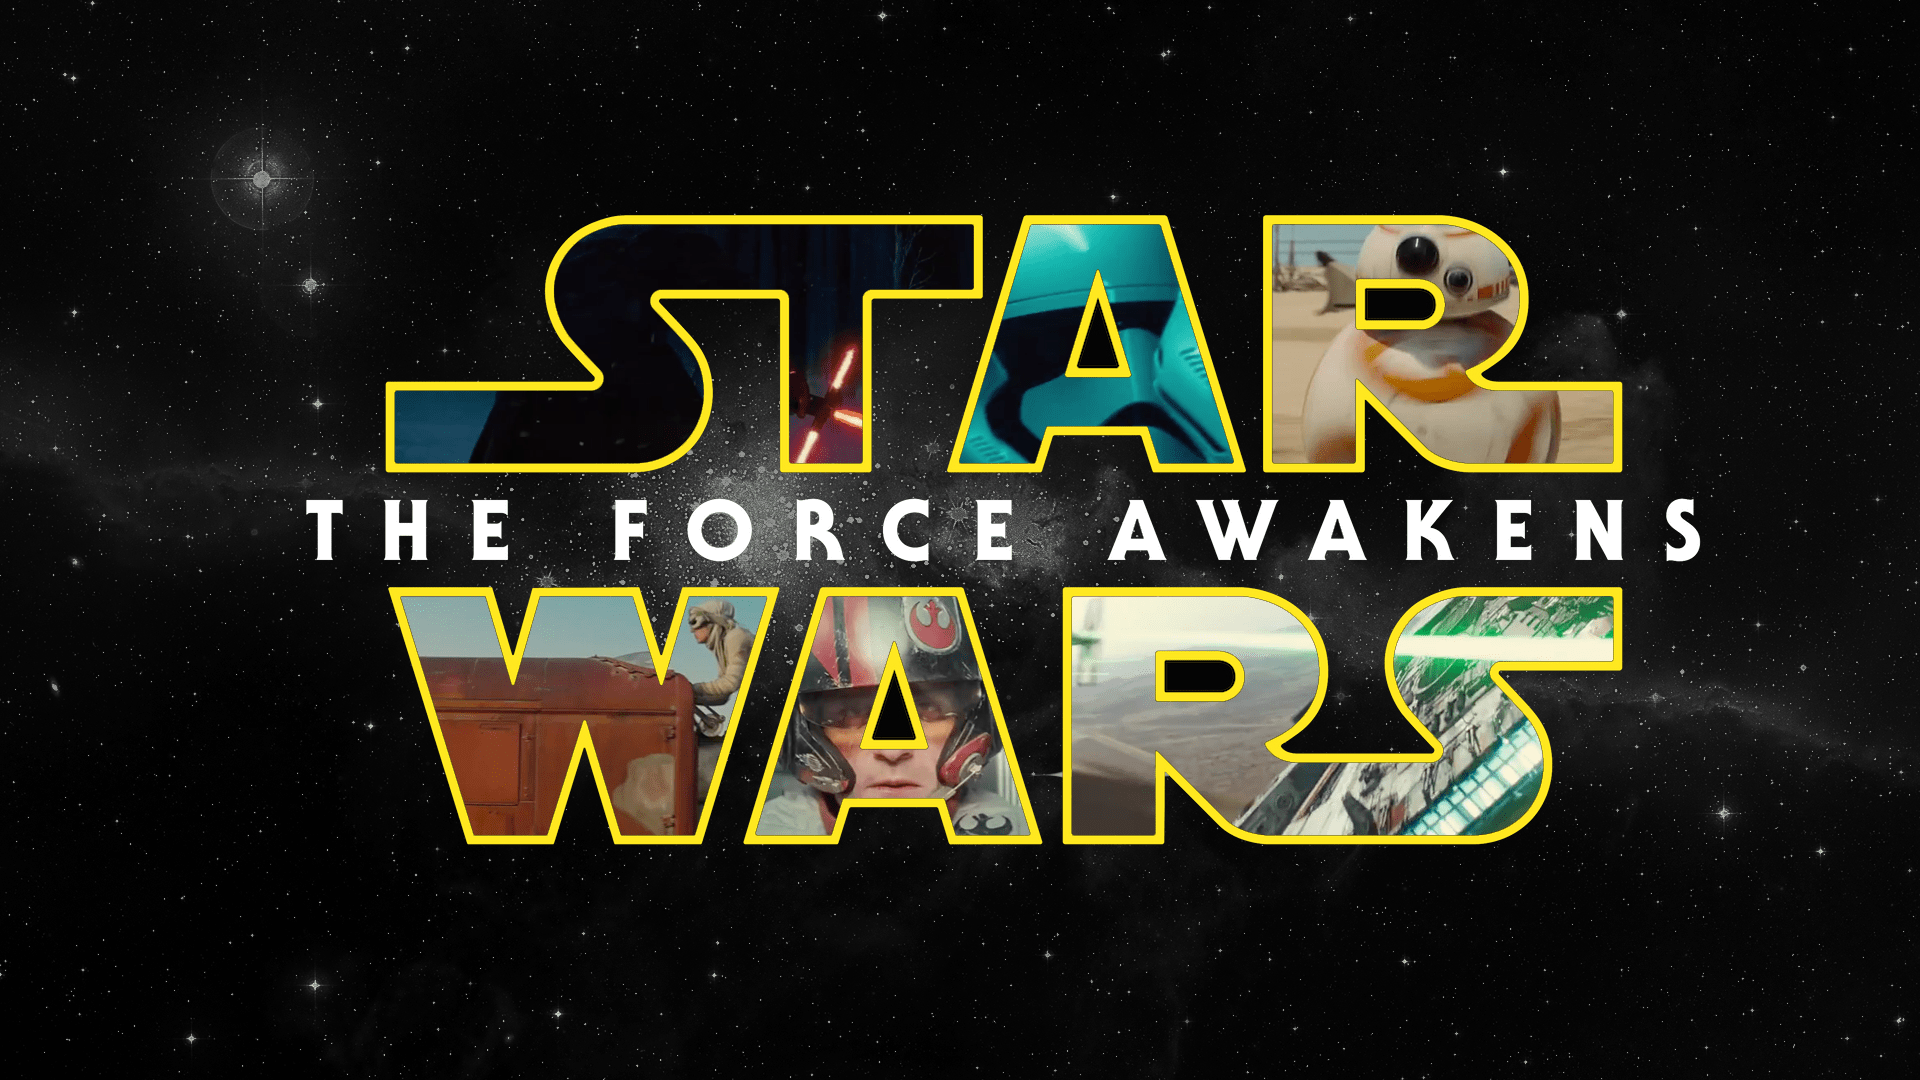 Must see Wallpaper Home Screen Star Wars - 2015-12-16-1450300622-8118374-Star_Wars  Trends_553751.png